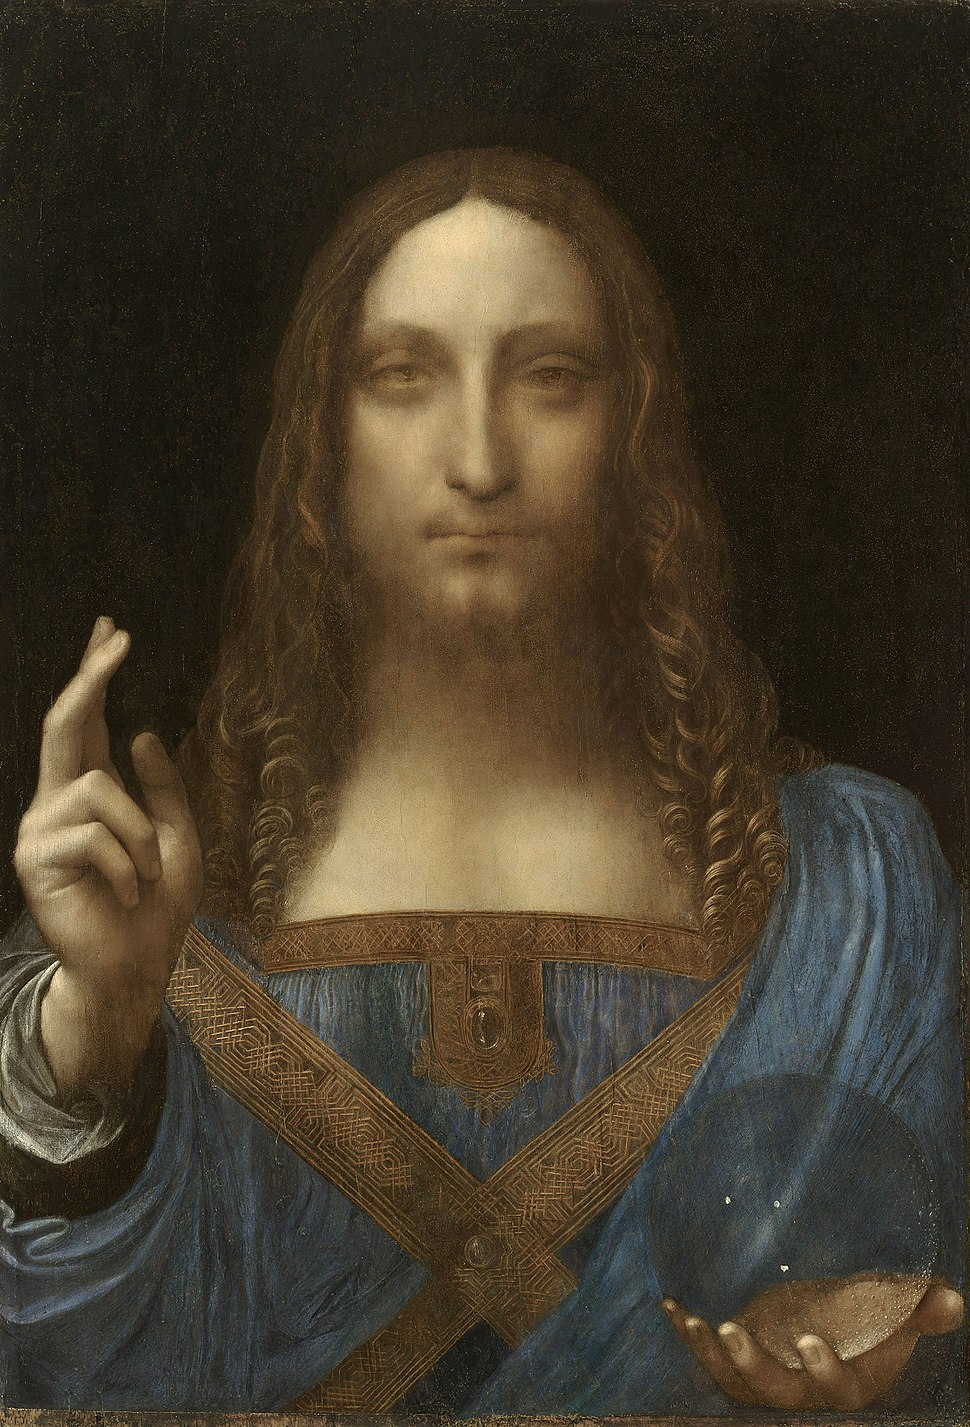 Leonardo da Vinci, Salvator Mundi, c.1500, oil on walnut, 45.4 × 65.6 cm